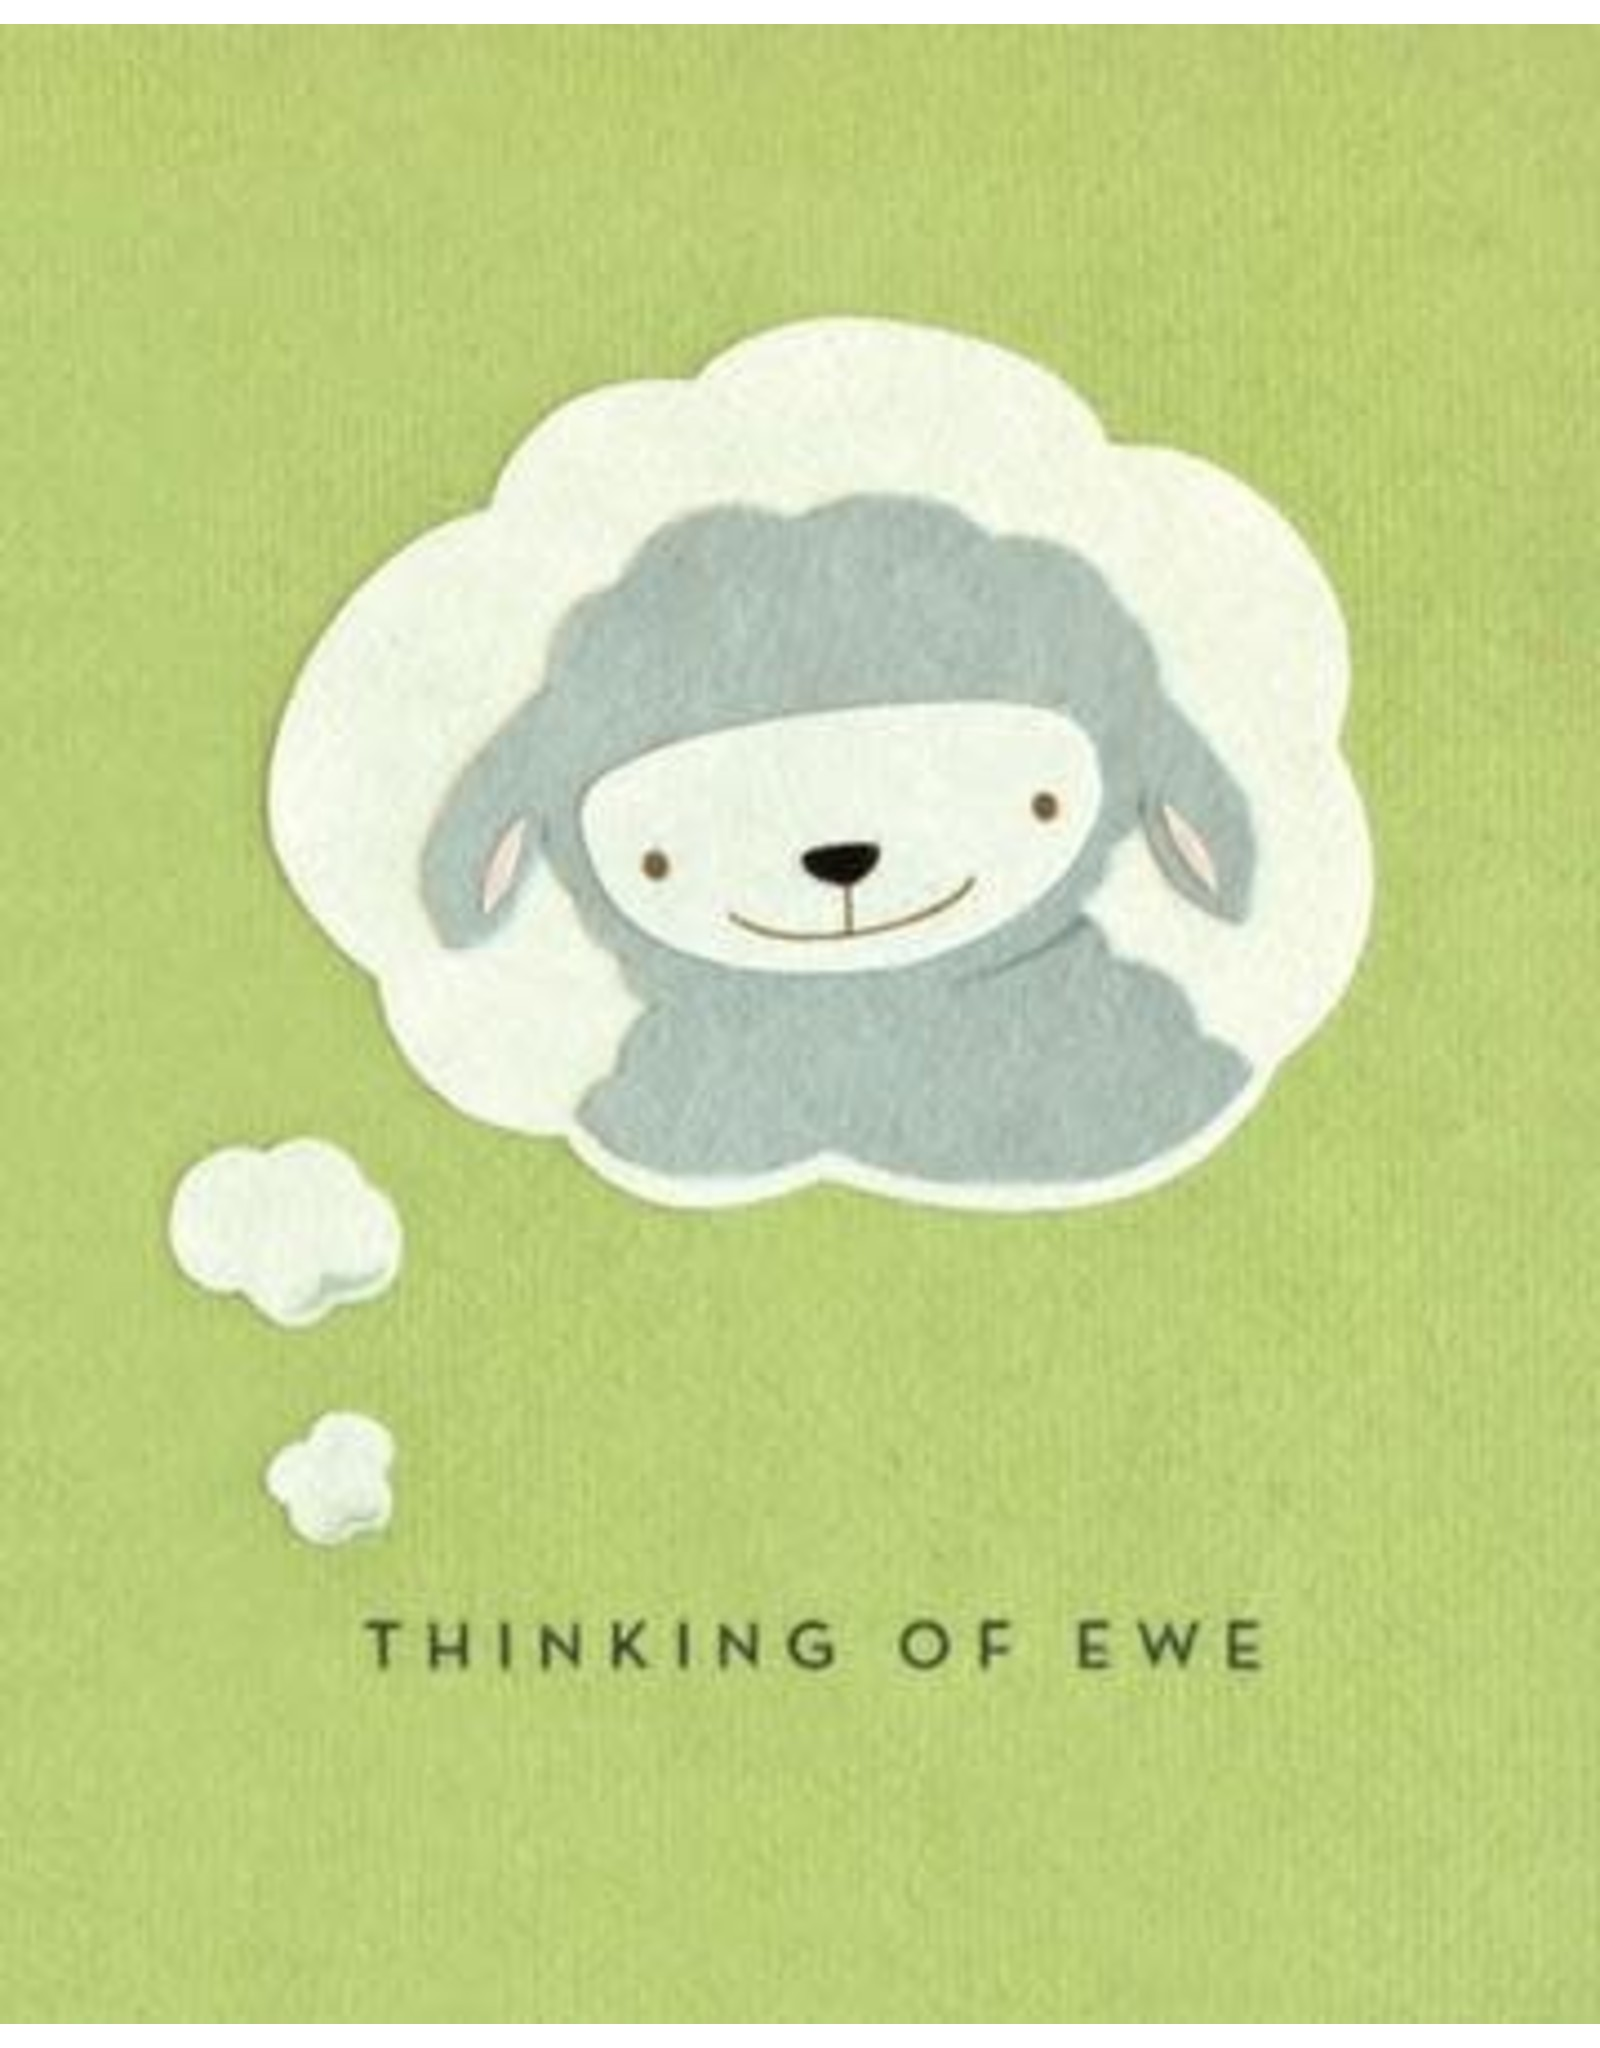 Good Paper Thinking of Ewe Card, Phillippines.